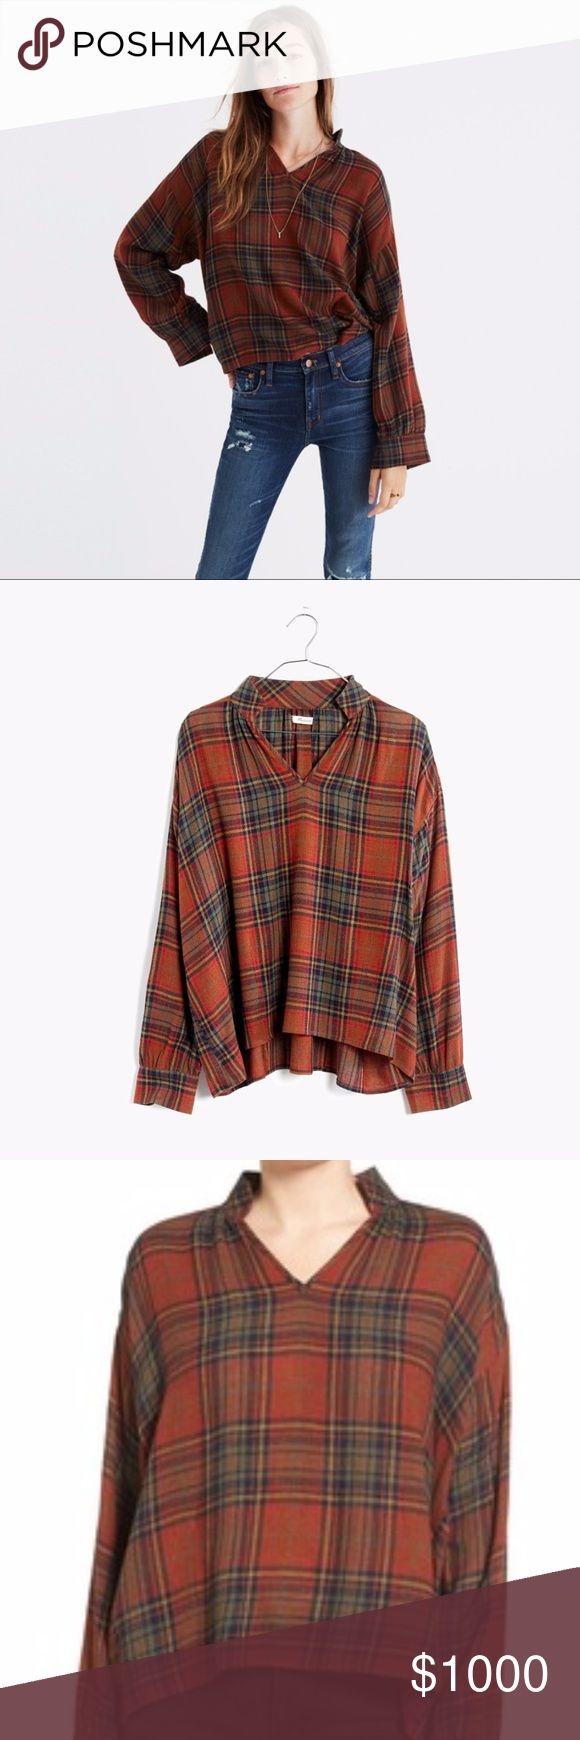 ISO: Madewell Highroad Popover in Brentford Plaid Love this shirt! When I went on Madewell today it wasn't there anymore! Please let me know if you have this or someone that does! Madewell Tops